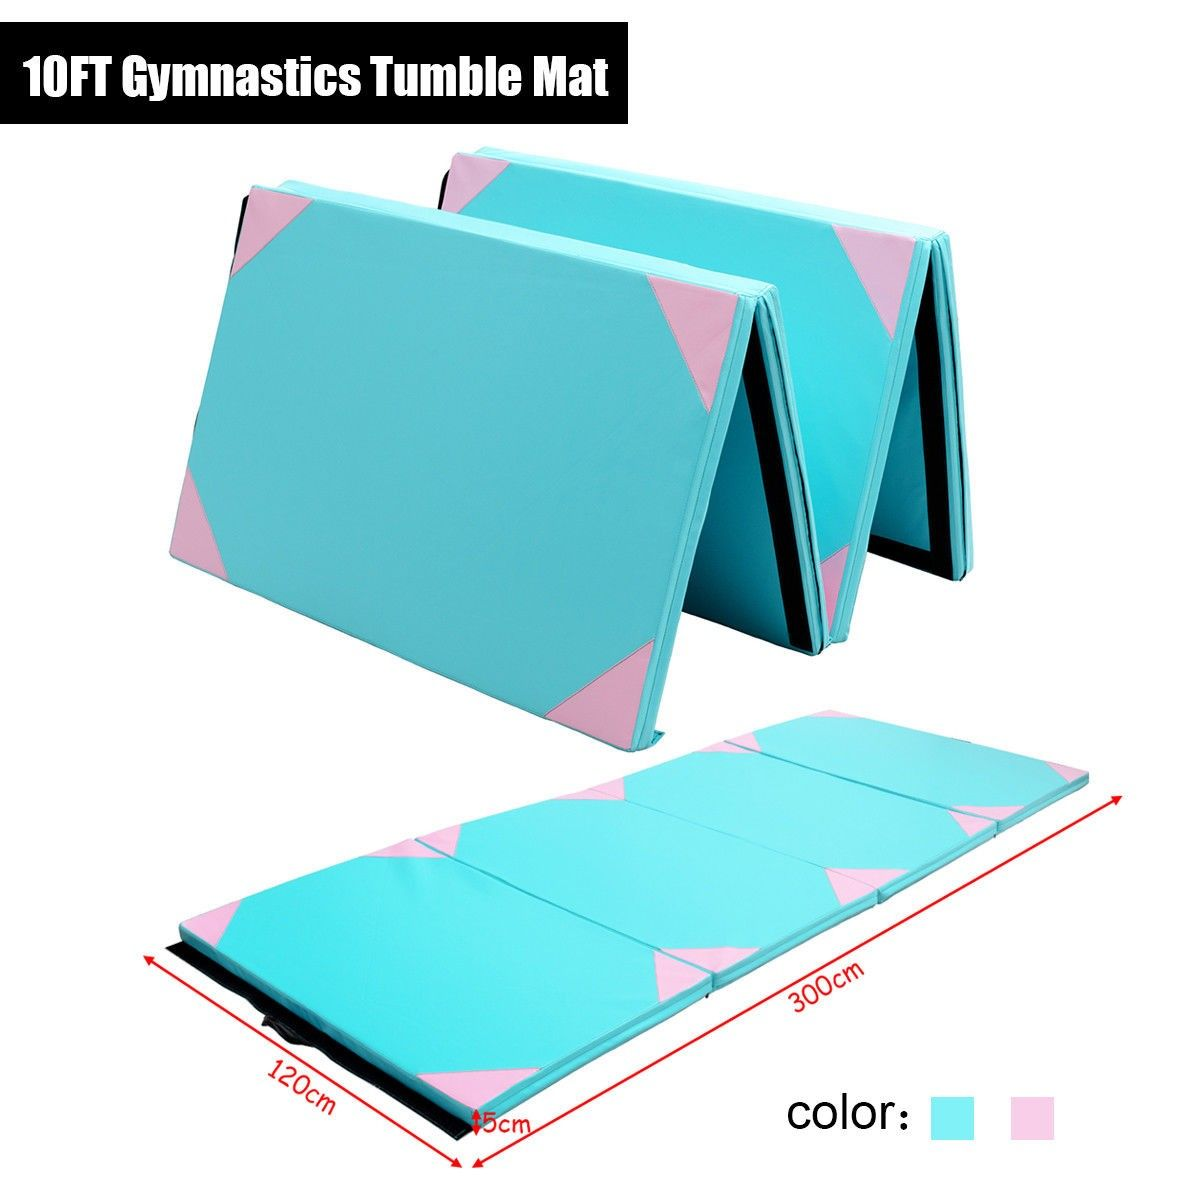 Costway 10ft Gymnastics Tumble Mat Folding Portable Exercise Gym Blue 300x120x5cm This Is Our New 300x120x5cm Folding Gymn Tumble Mats Gymnastics Gym Workouts